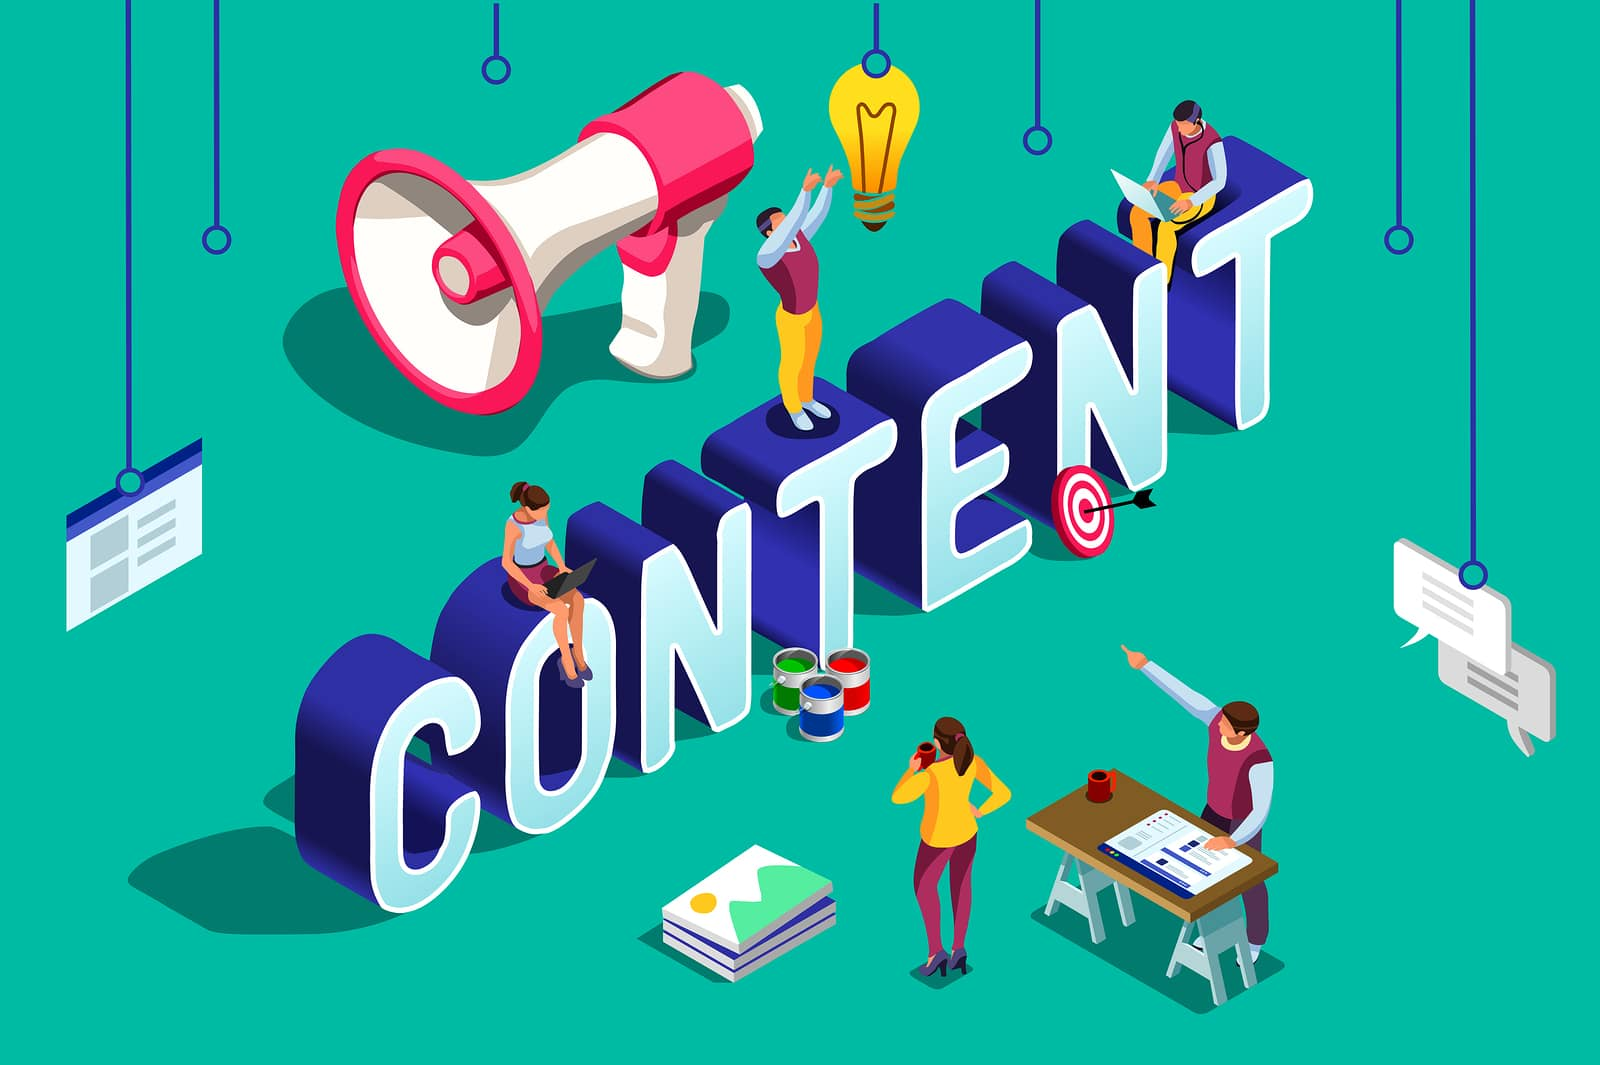 The word content in block letters representing how high quality content is an important SEO strategy for therapists, psychologists, psychiatrists, birth workers, SLPs, educators and others in the helping profession.